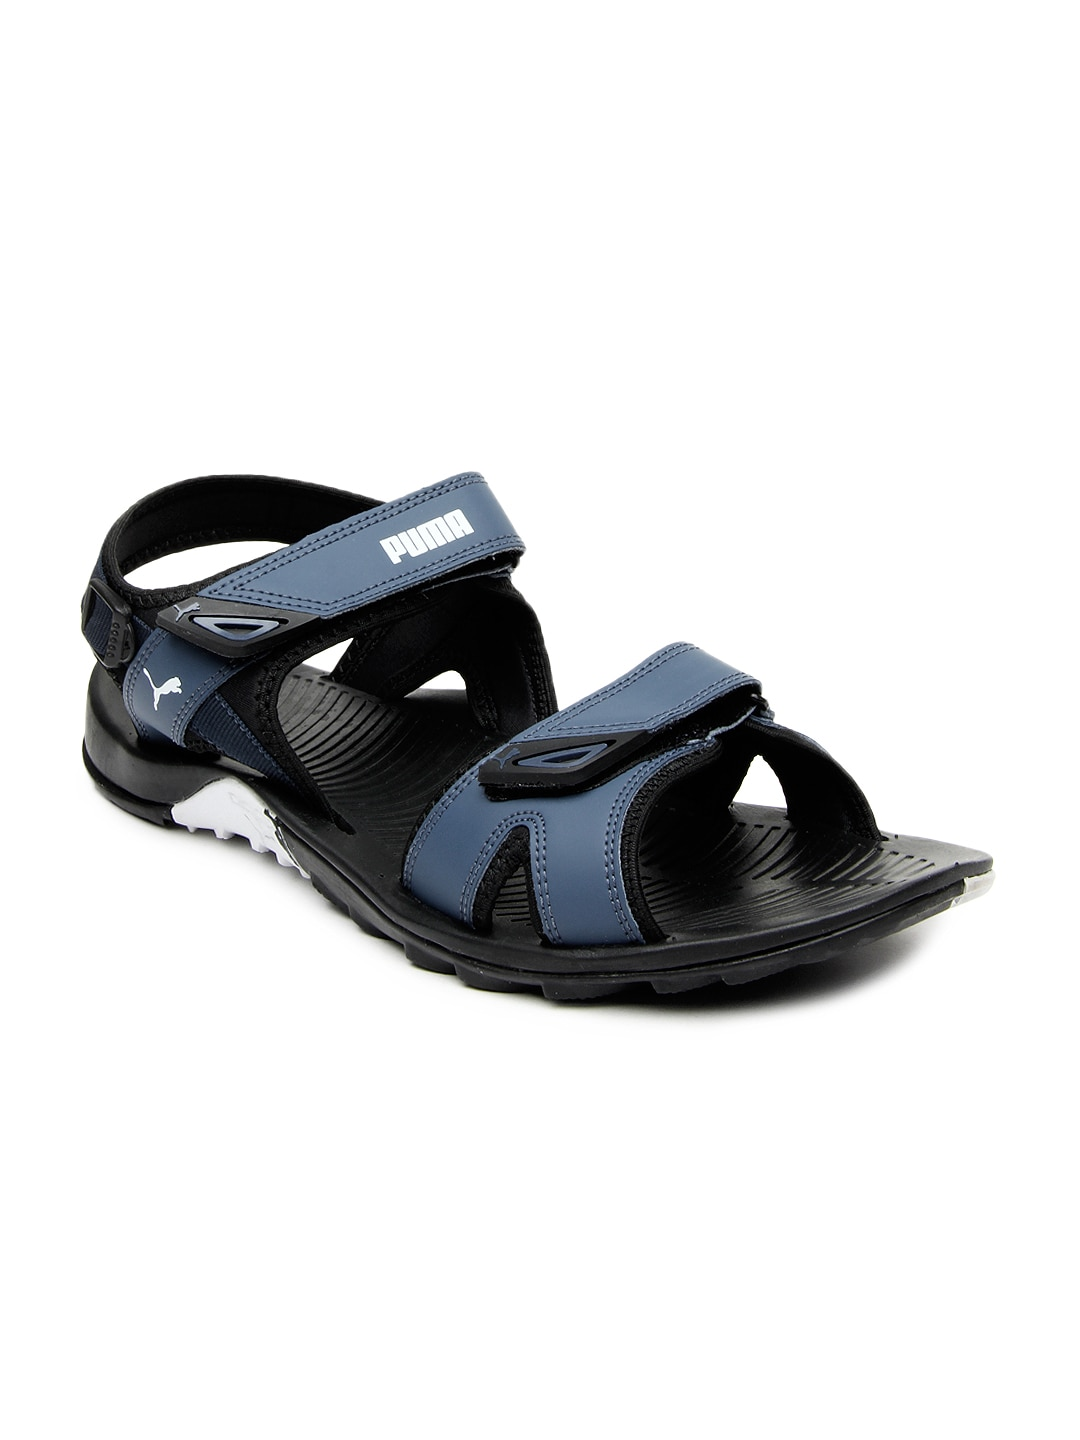 2bfd9fcf42c puma sandals for mens